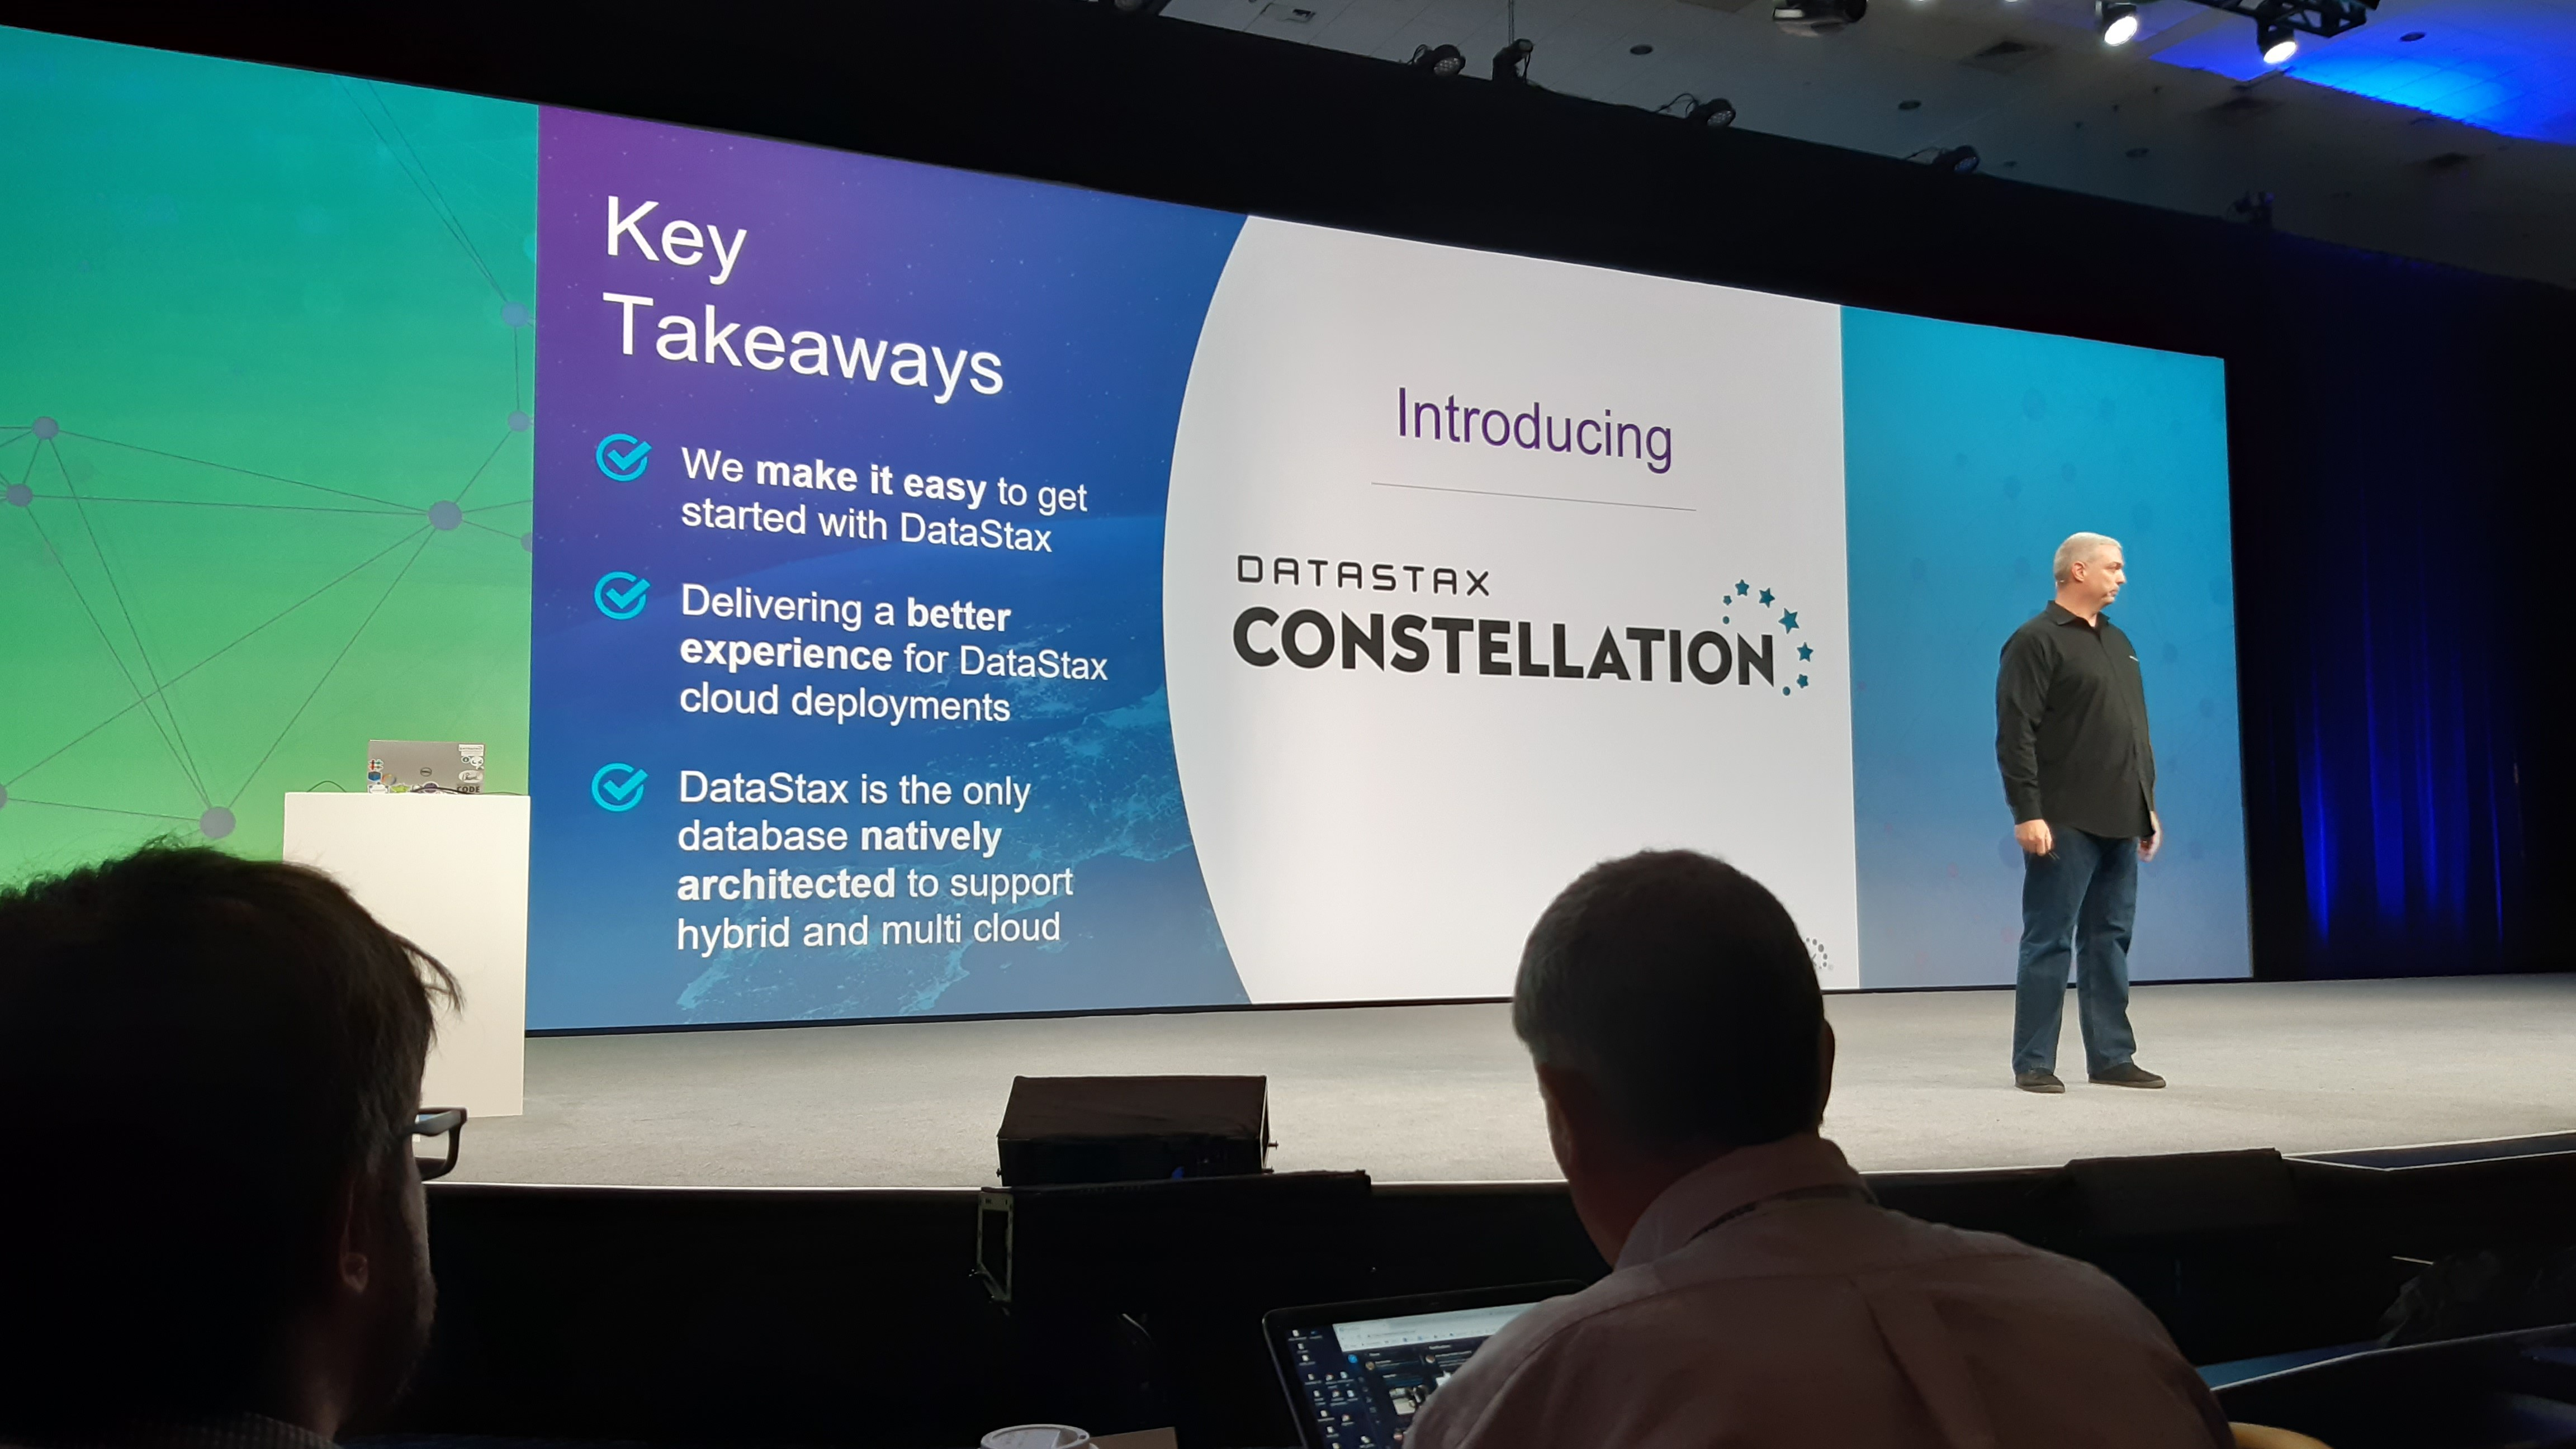 DataStax soft launches Constellation for managing cloud